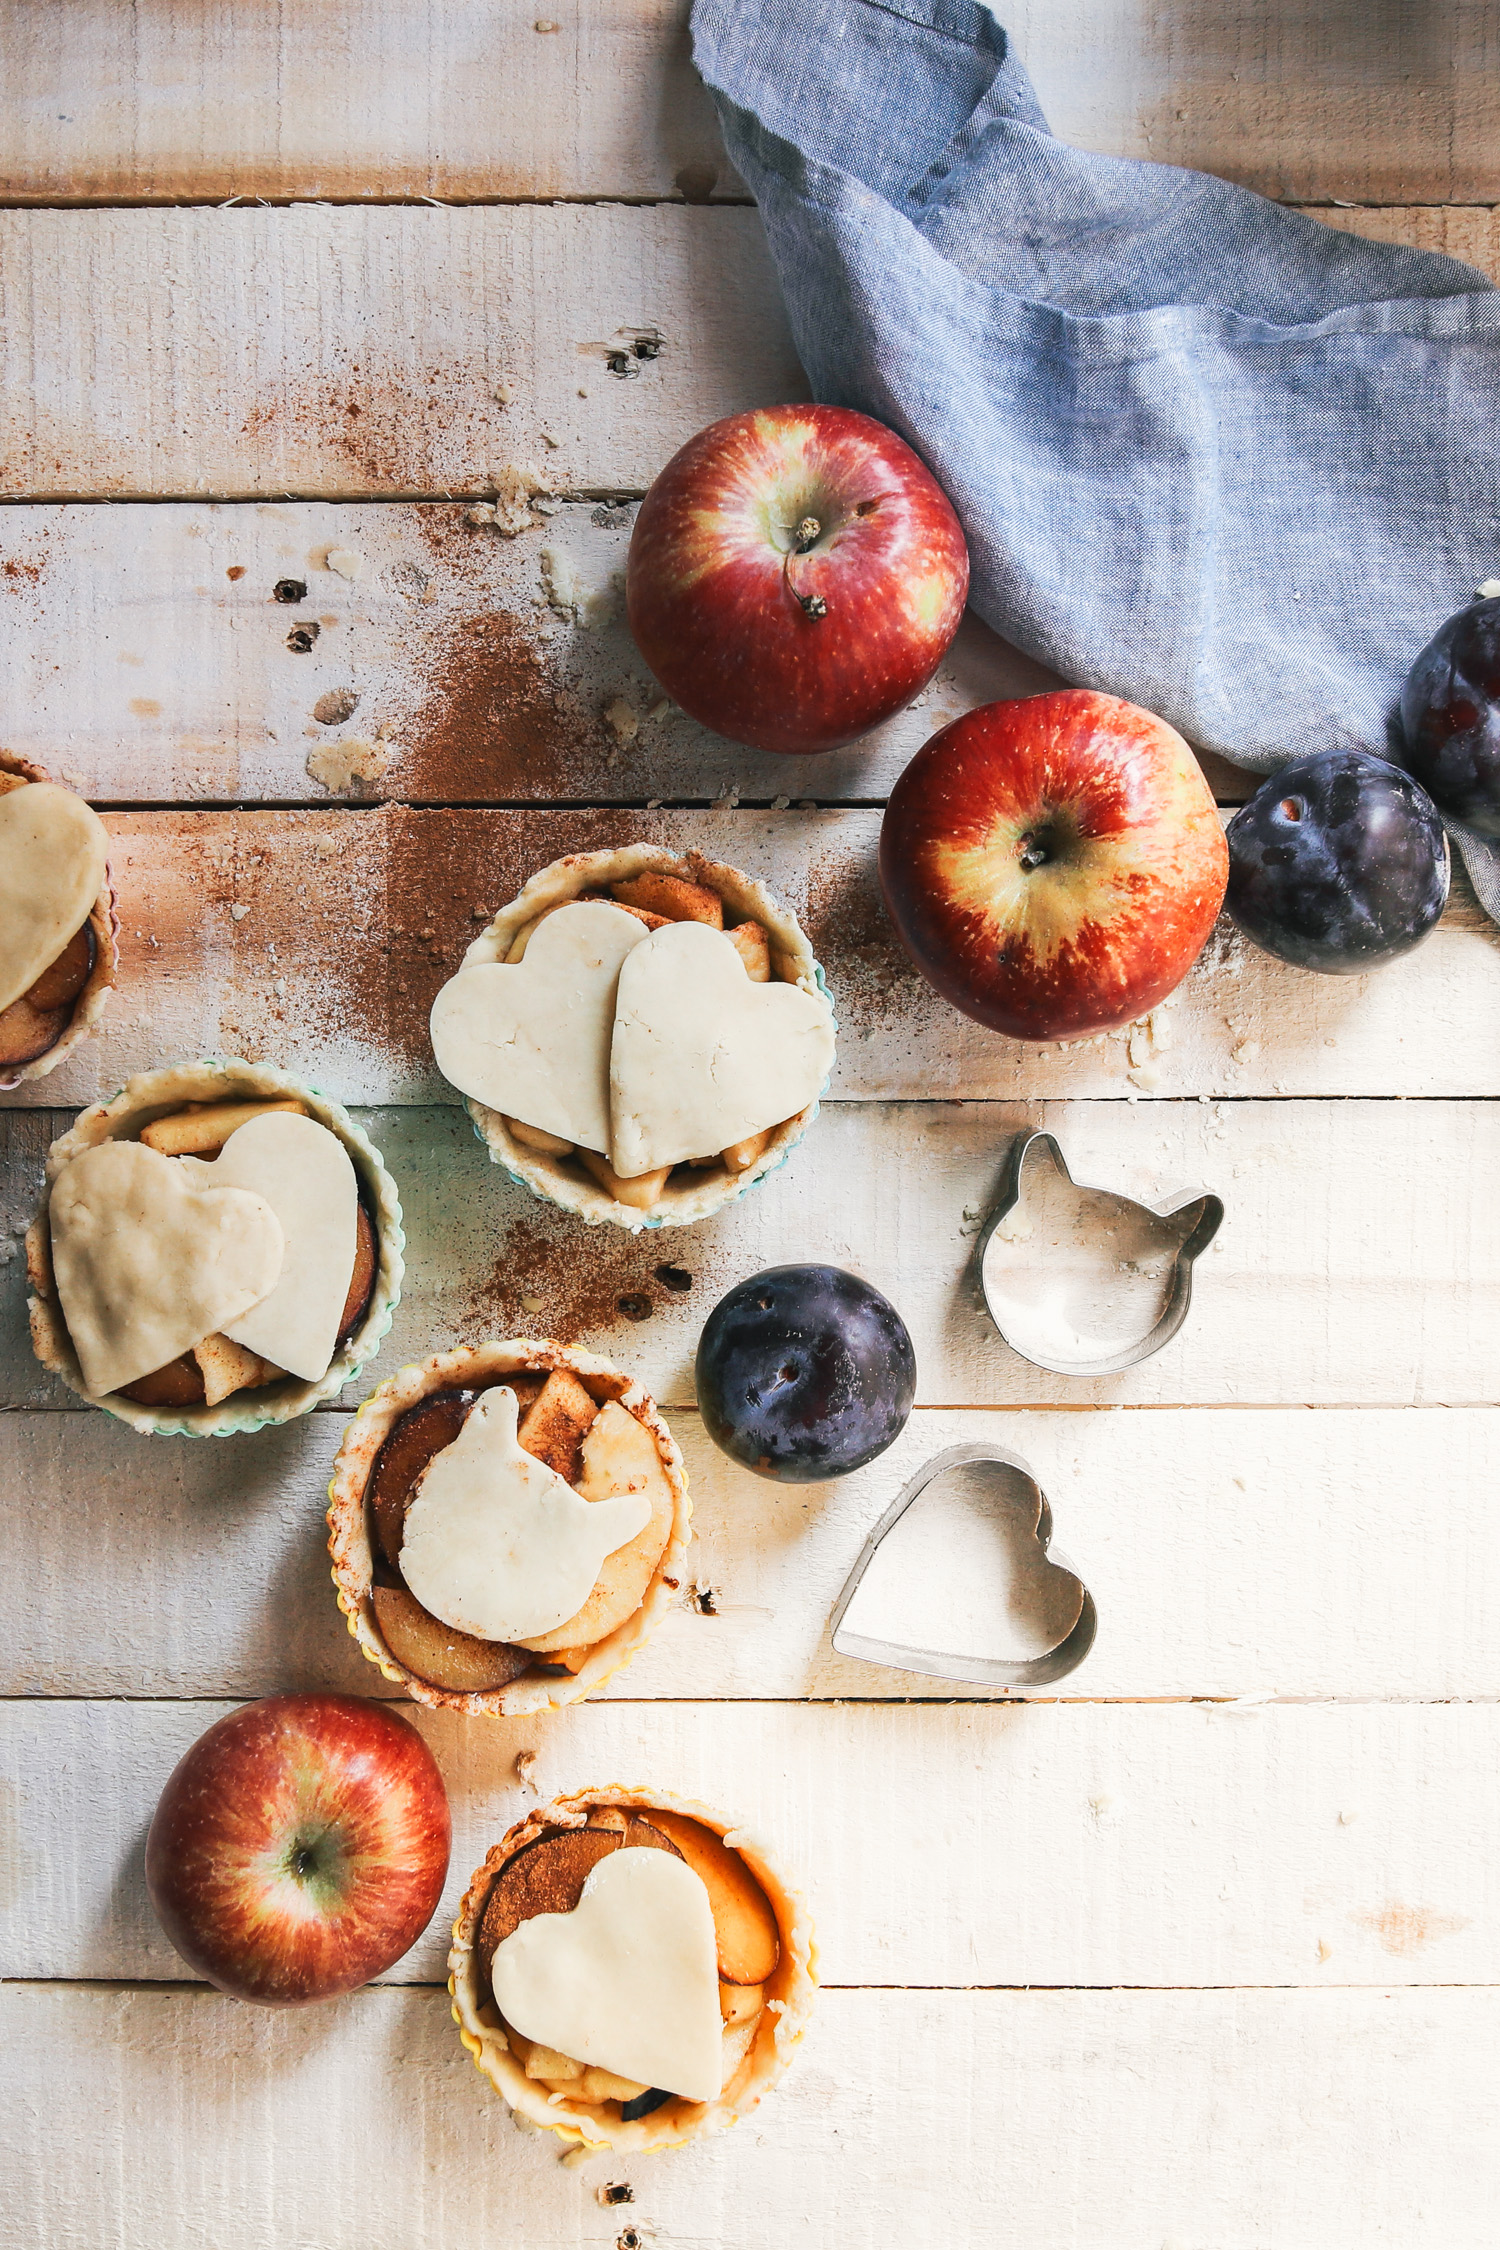 Vegan Mini Apple Plum Pies by Kati of black.white.vivid.